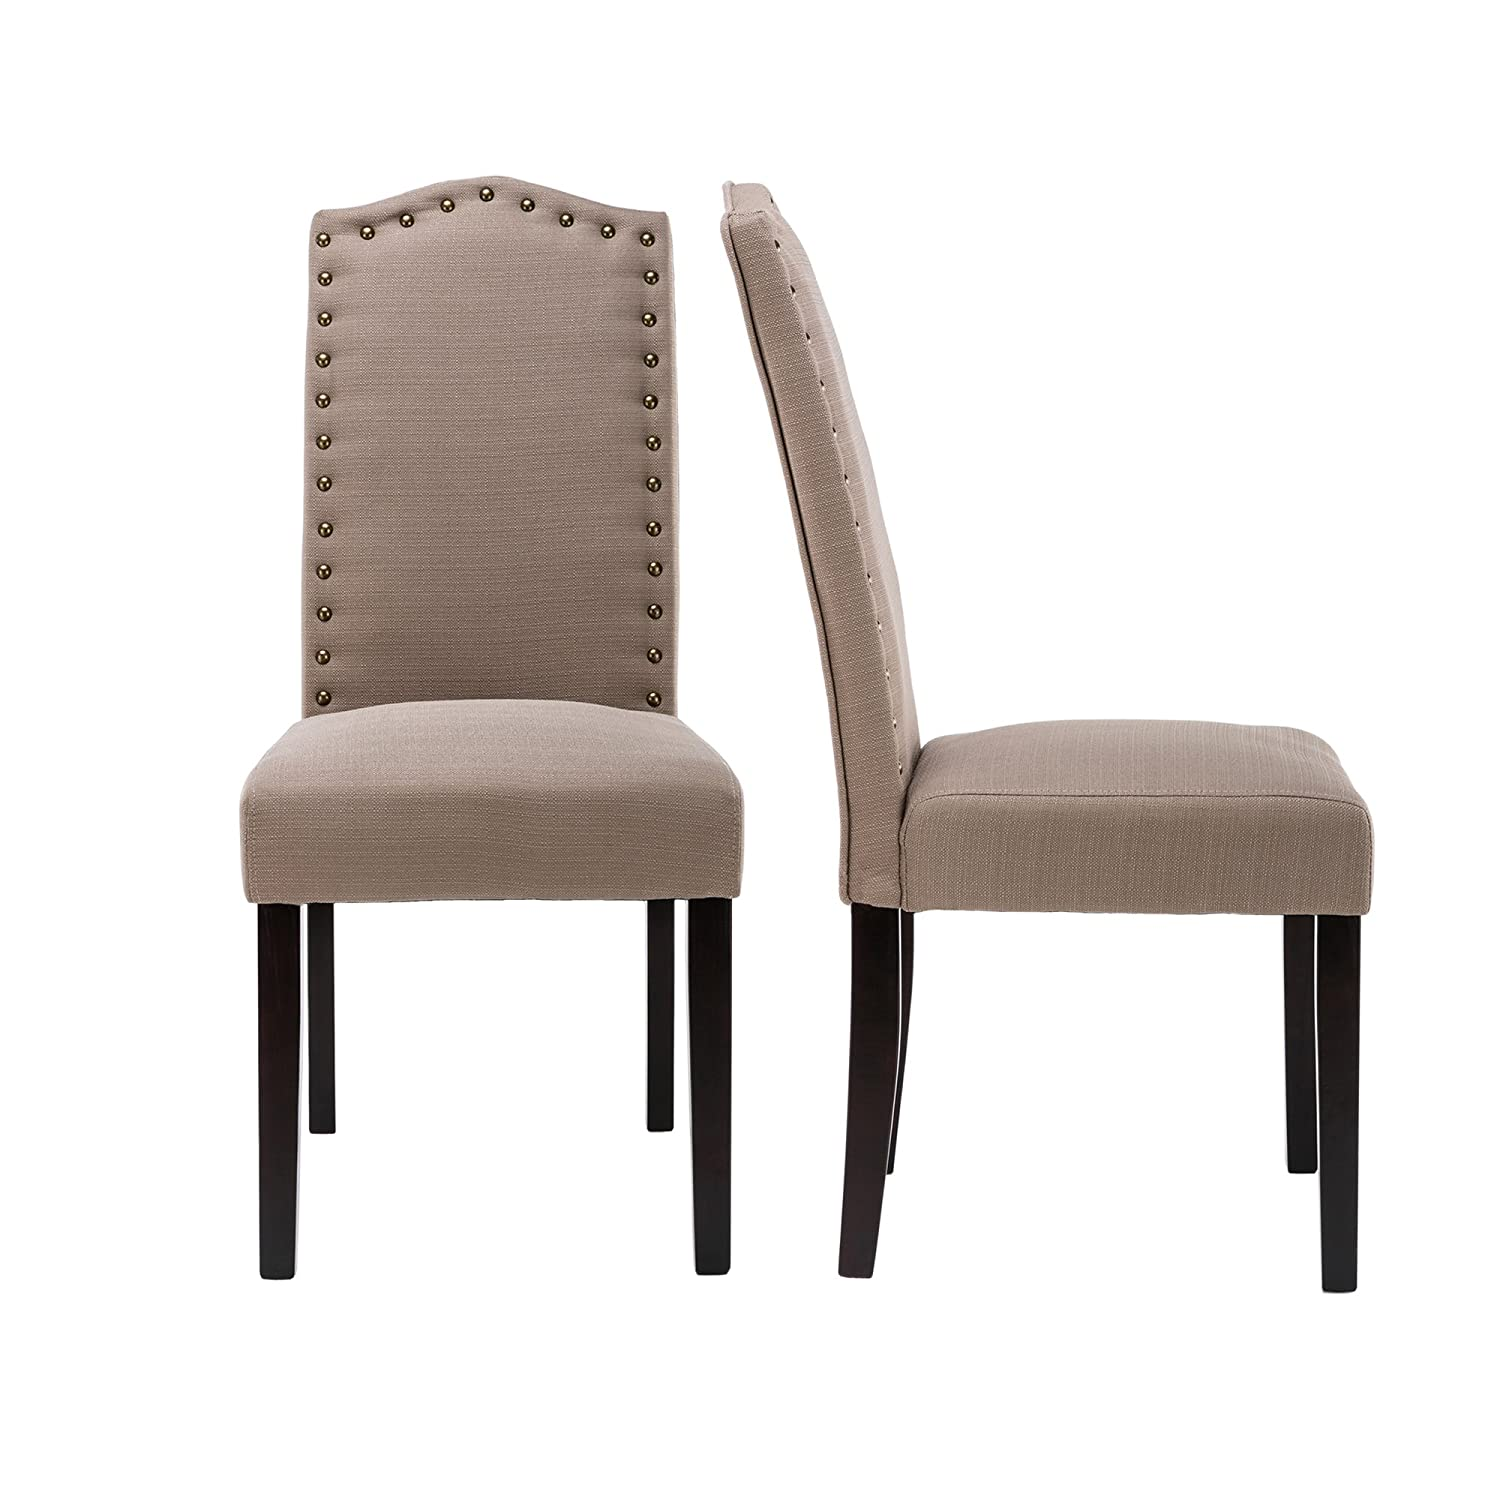 Amazon.com   LSSBOUGHT Set Of 2 Luxurious Fabric Dining Chairs With Copper  Nails And Solid Wood Legs (Light Gray)   Chairs